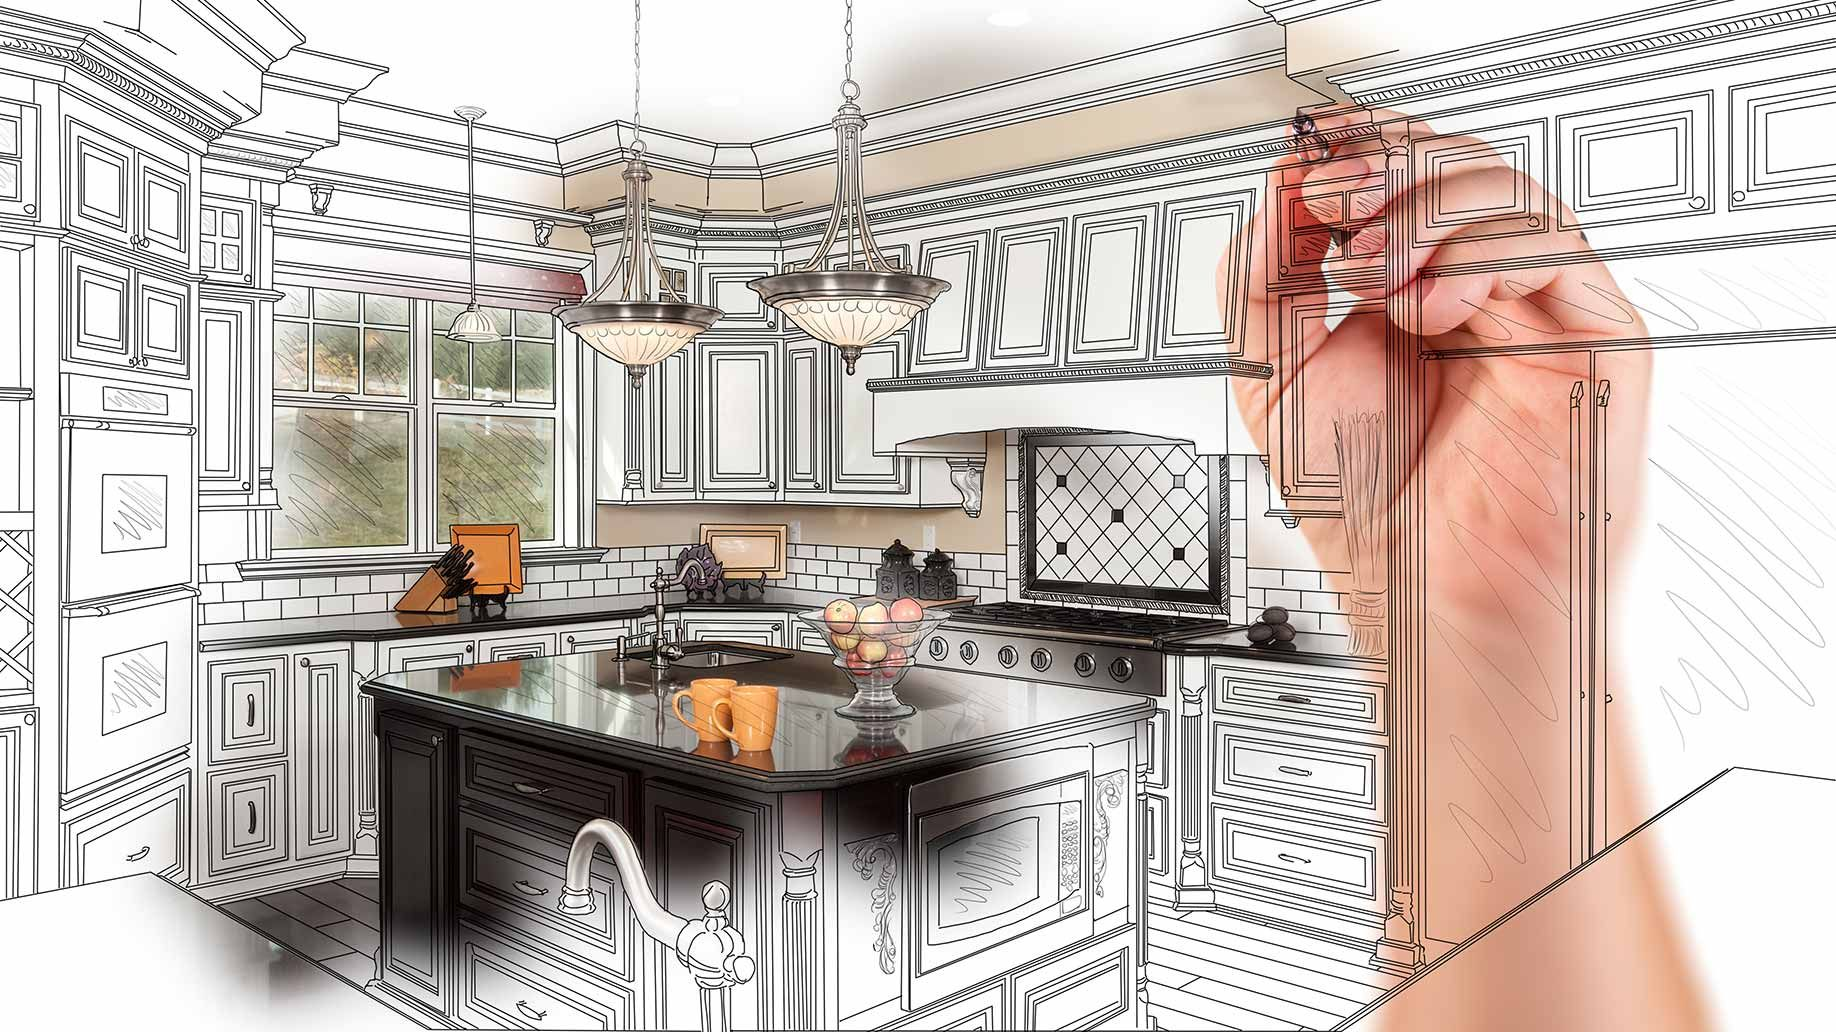 how to remodel your kitchen on a budget costs design ideas kitchen lighting design on l kitchen remodel id=30914